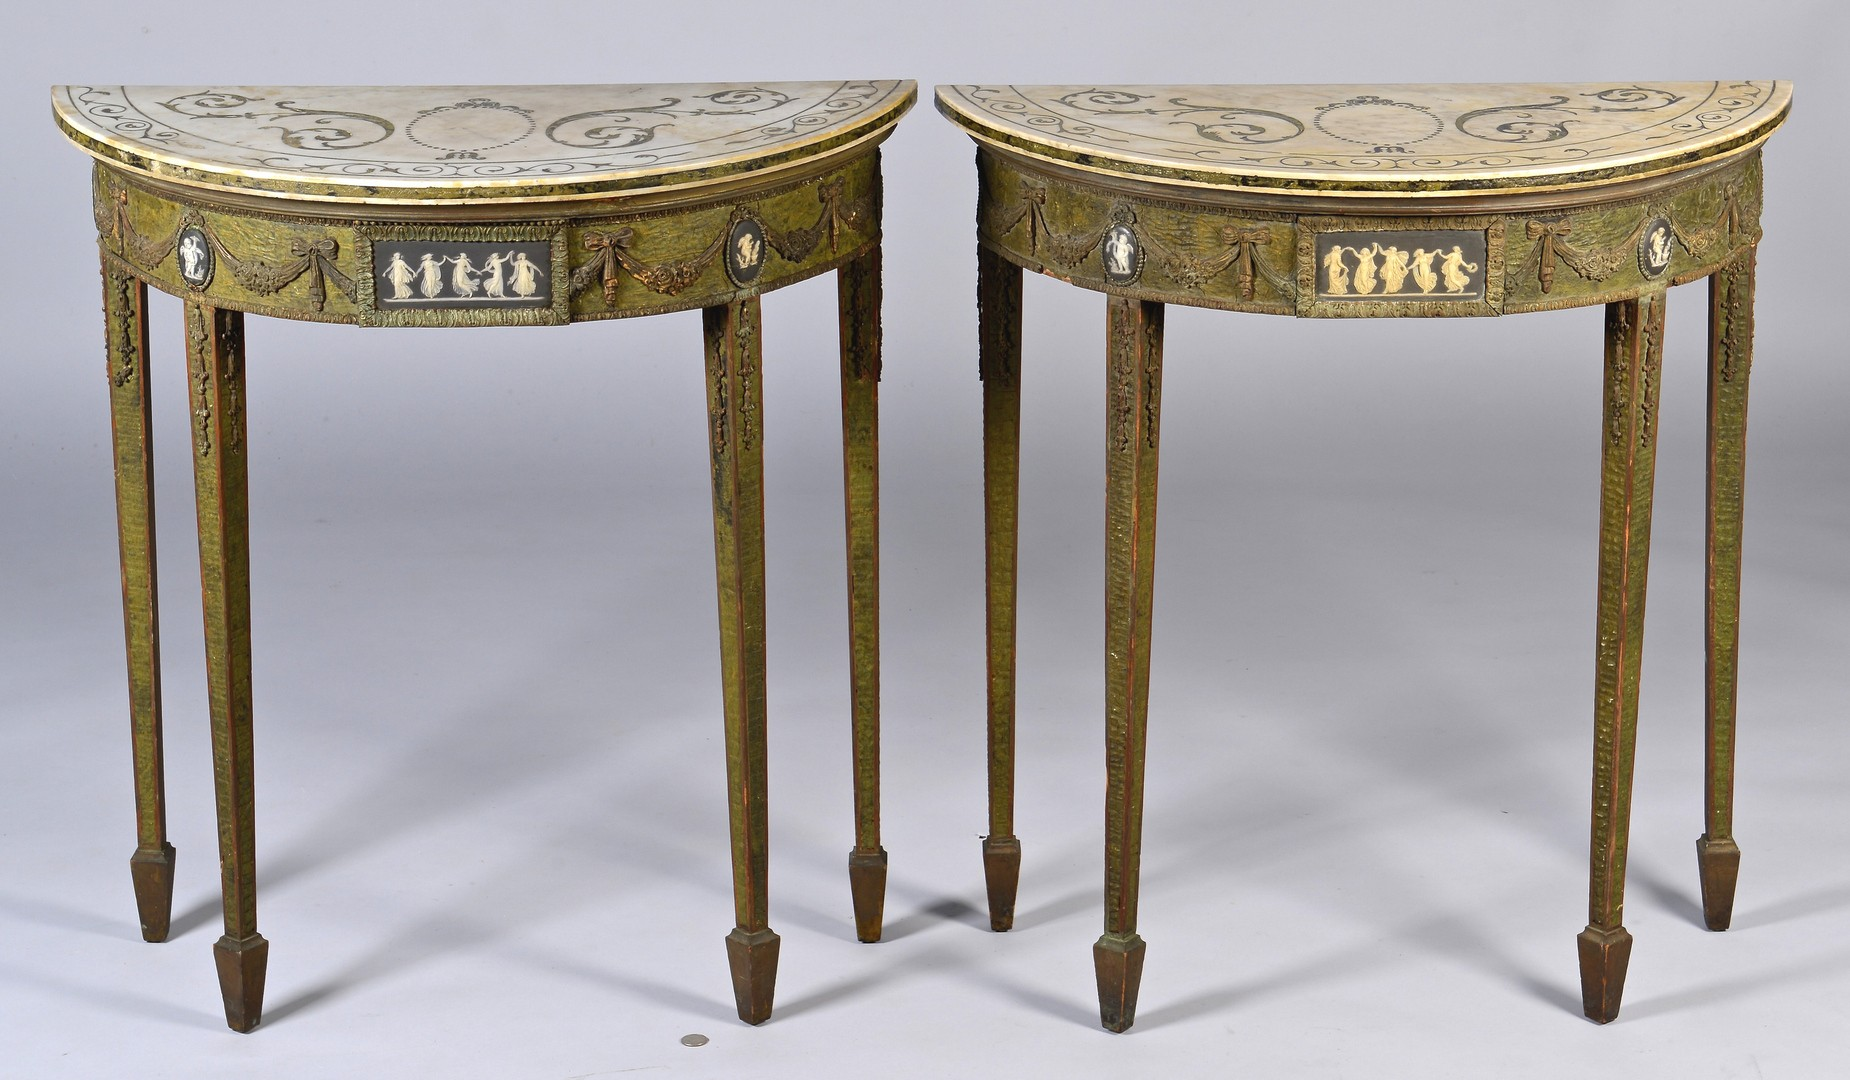 Two Robert Adam-style painted console tables have Wedgwood plaques and Scagliola inlaid marble tops. Estimate: $2,400-3400.Case Antiques Auction image